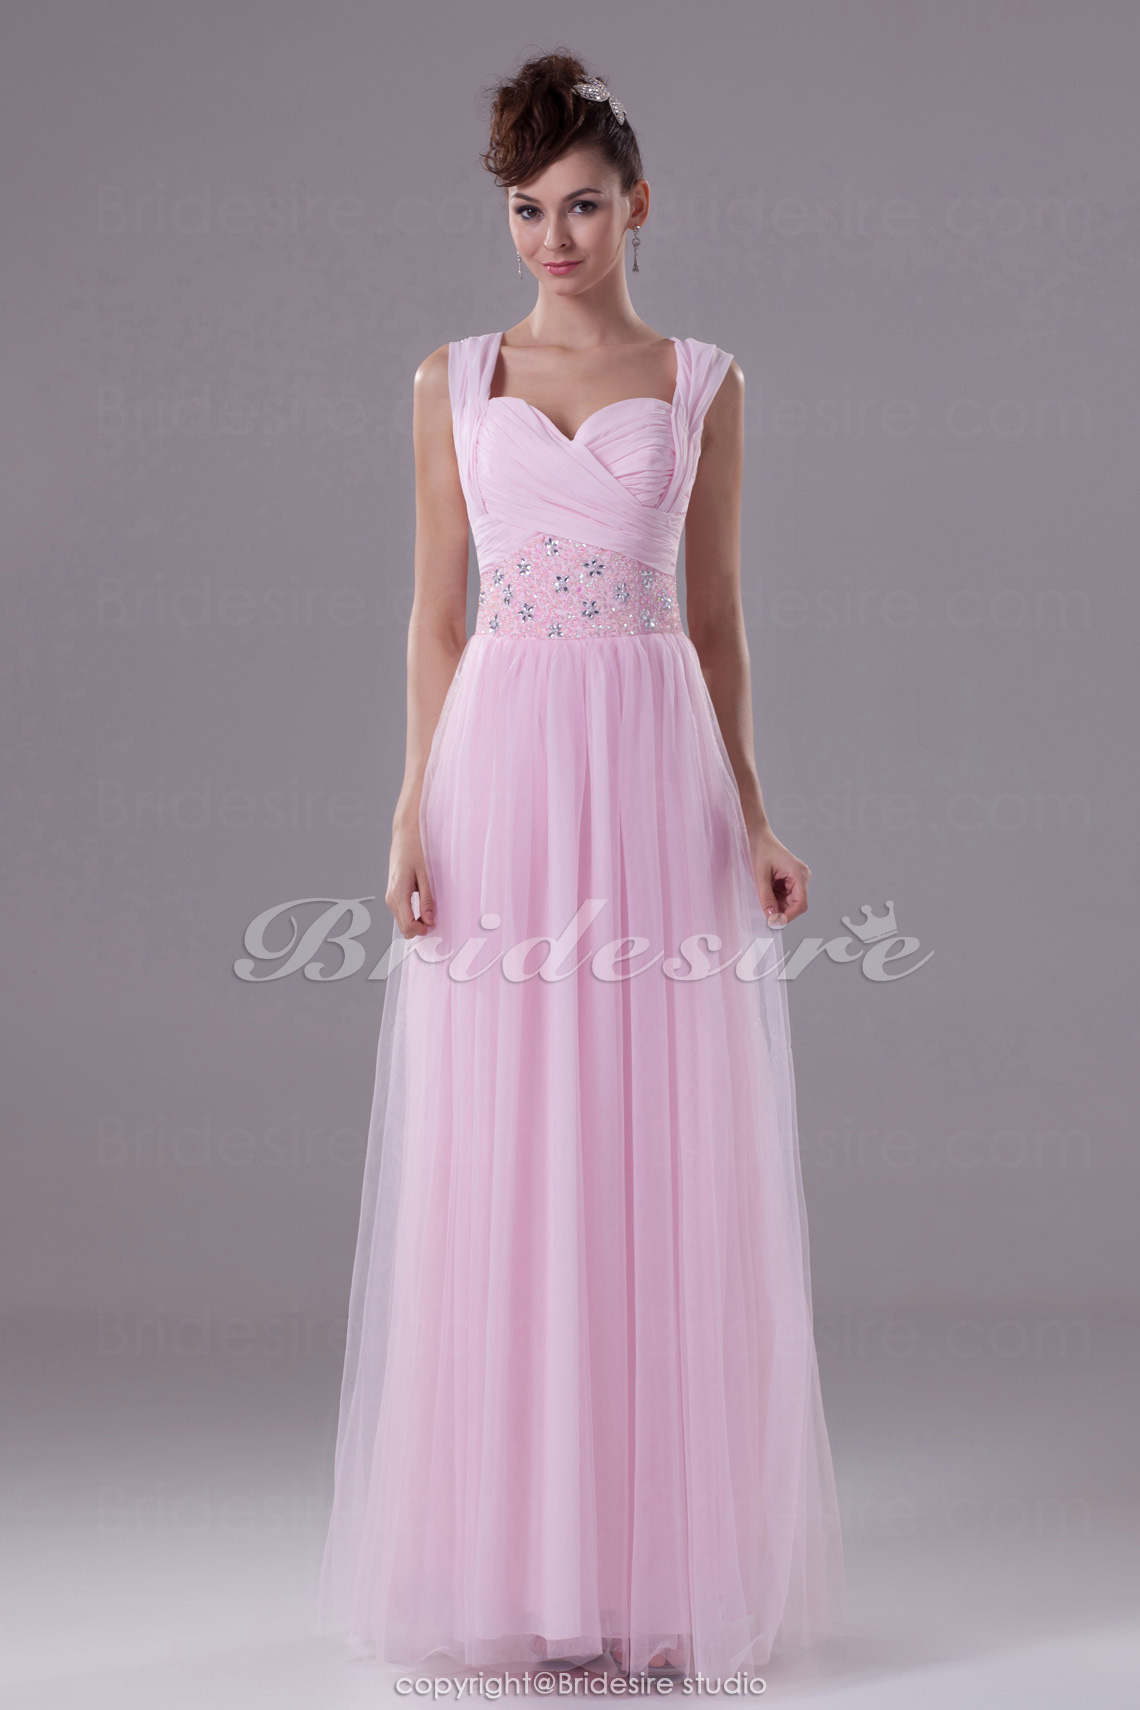 Sheath/Column Sweetheart Floor-length Sleeveless Chiffon Tulle D